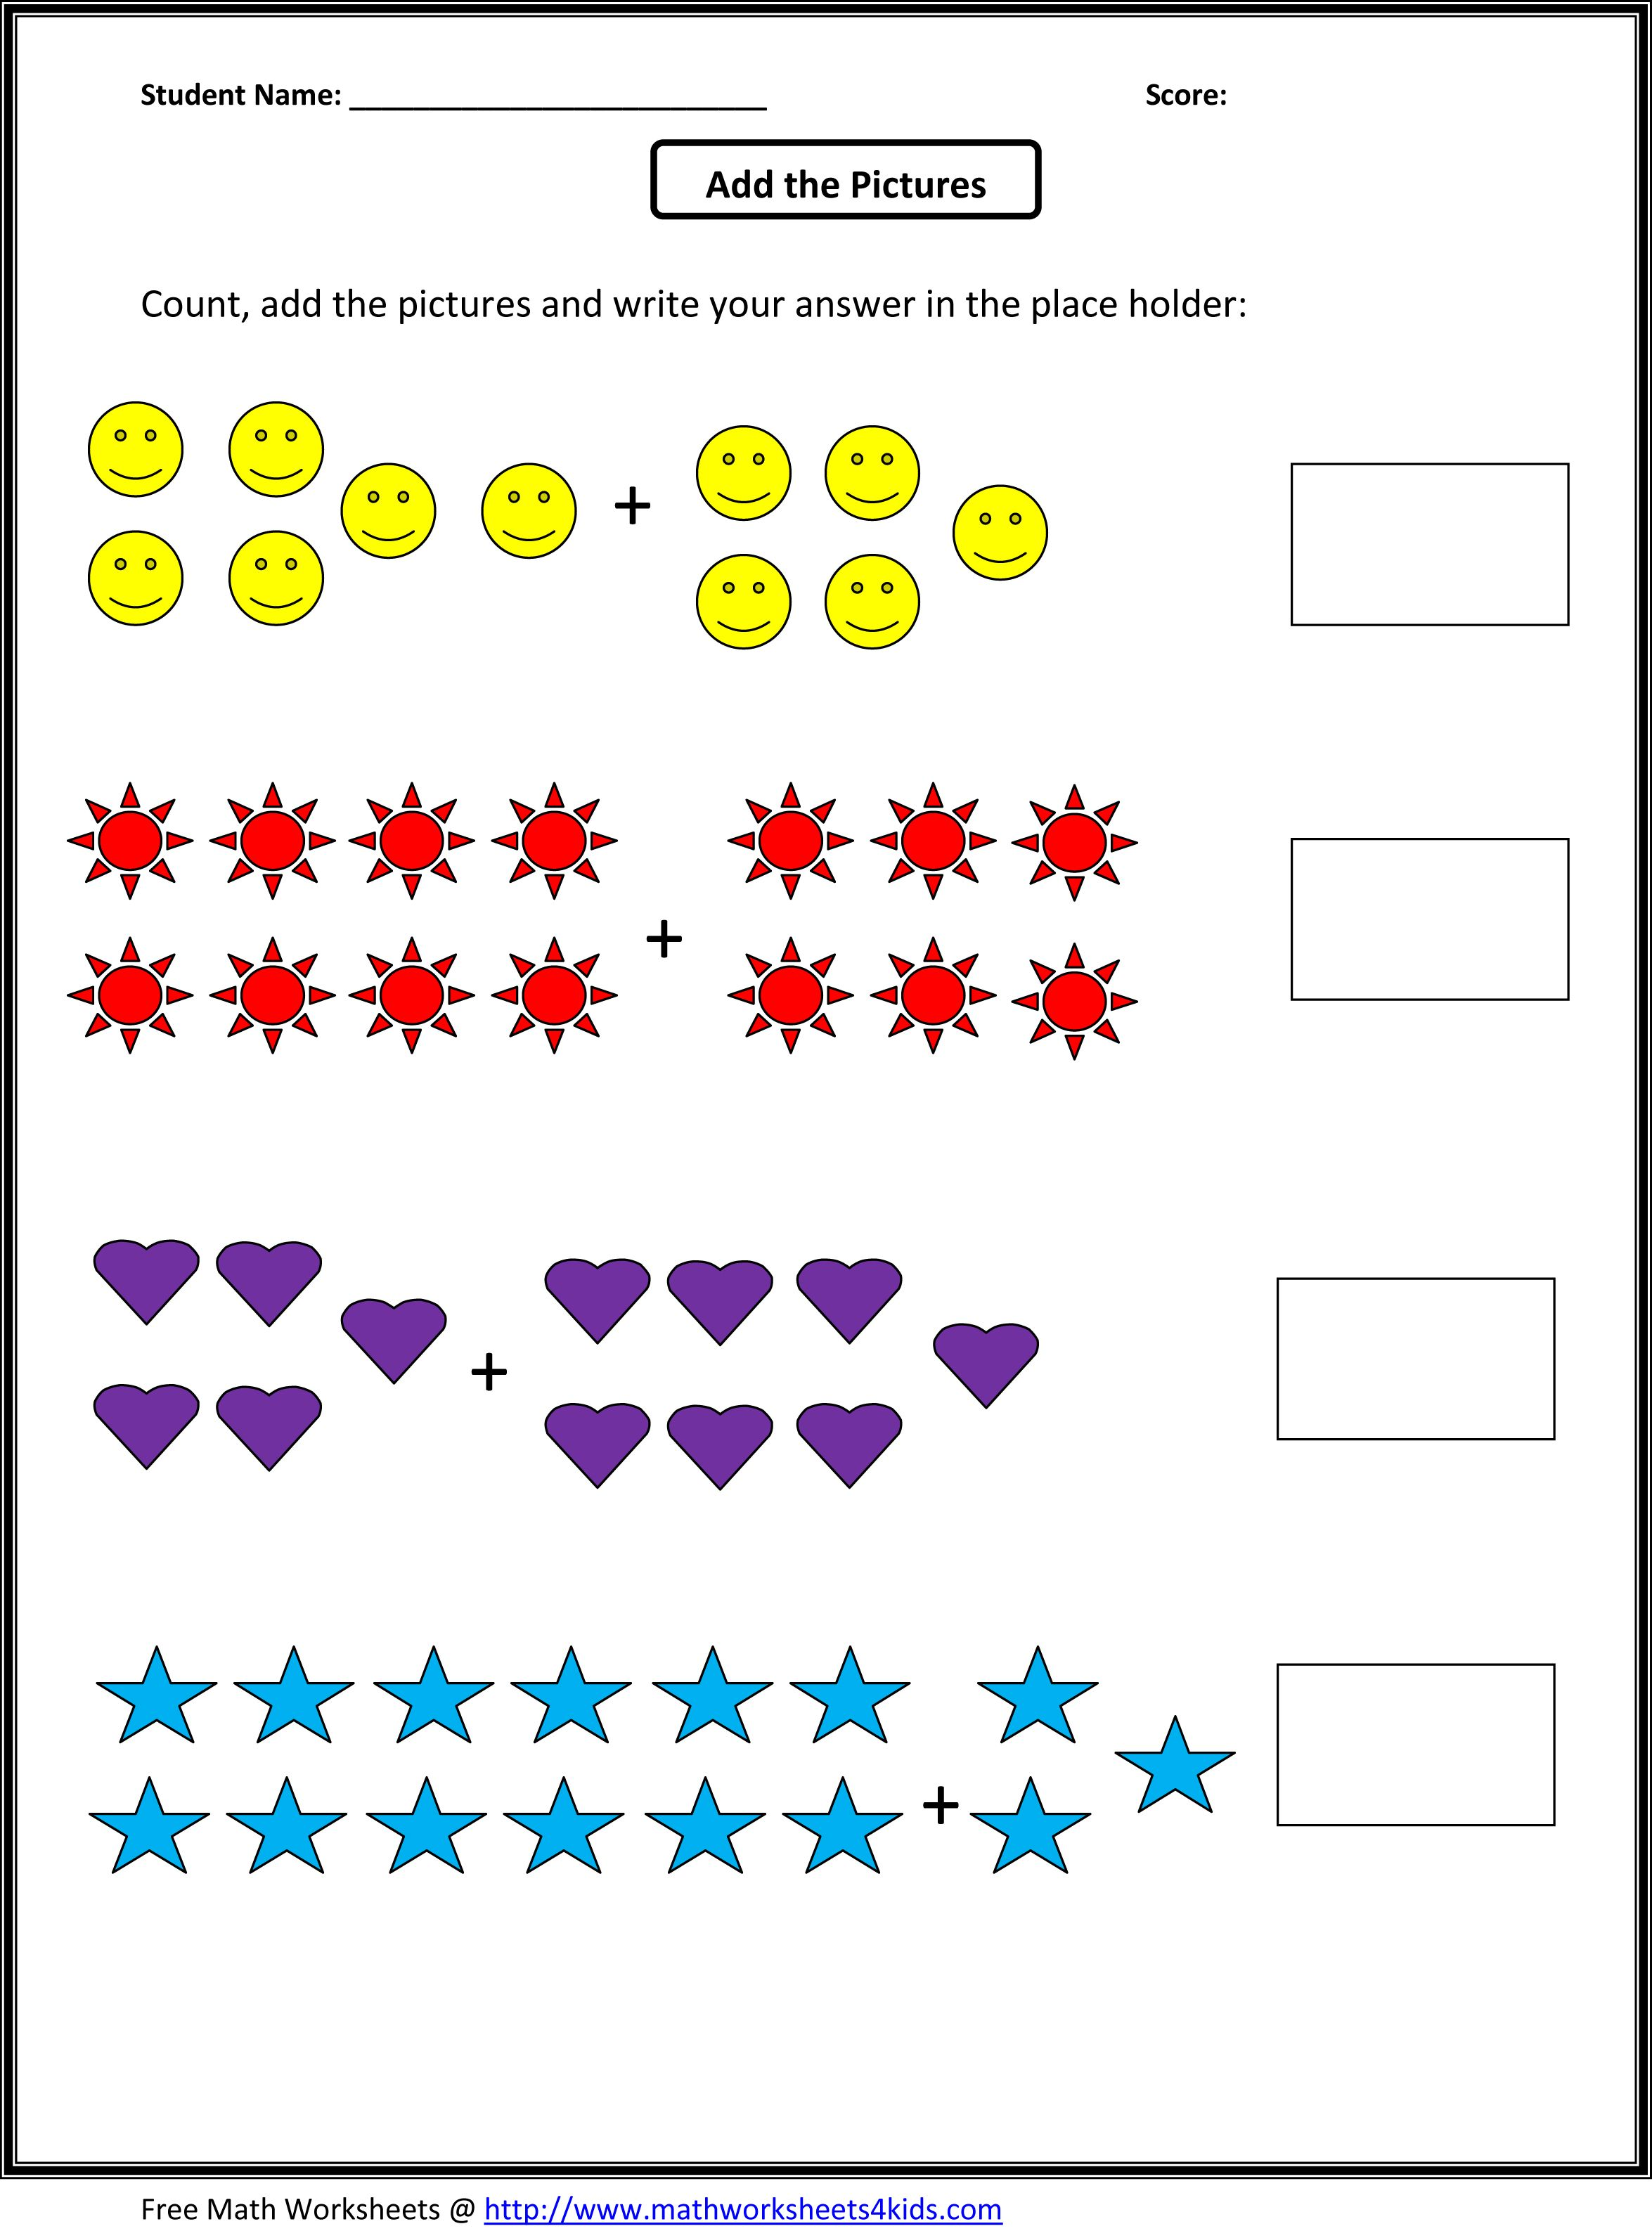 grade 1 addition math worksheets – Grade One Math Worksheets Free Worksheet